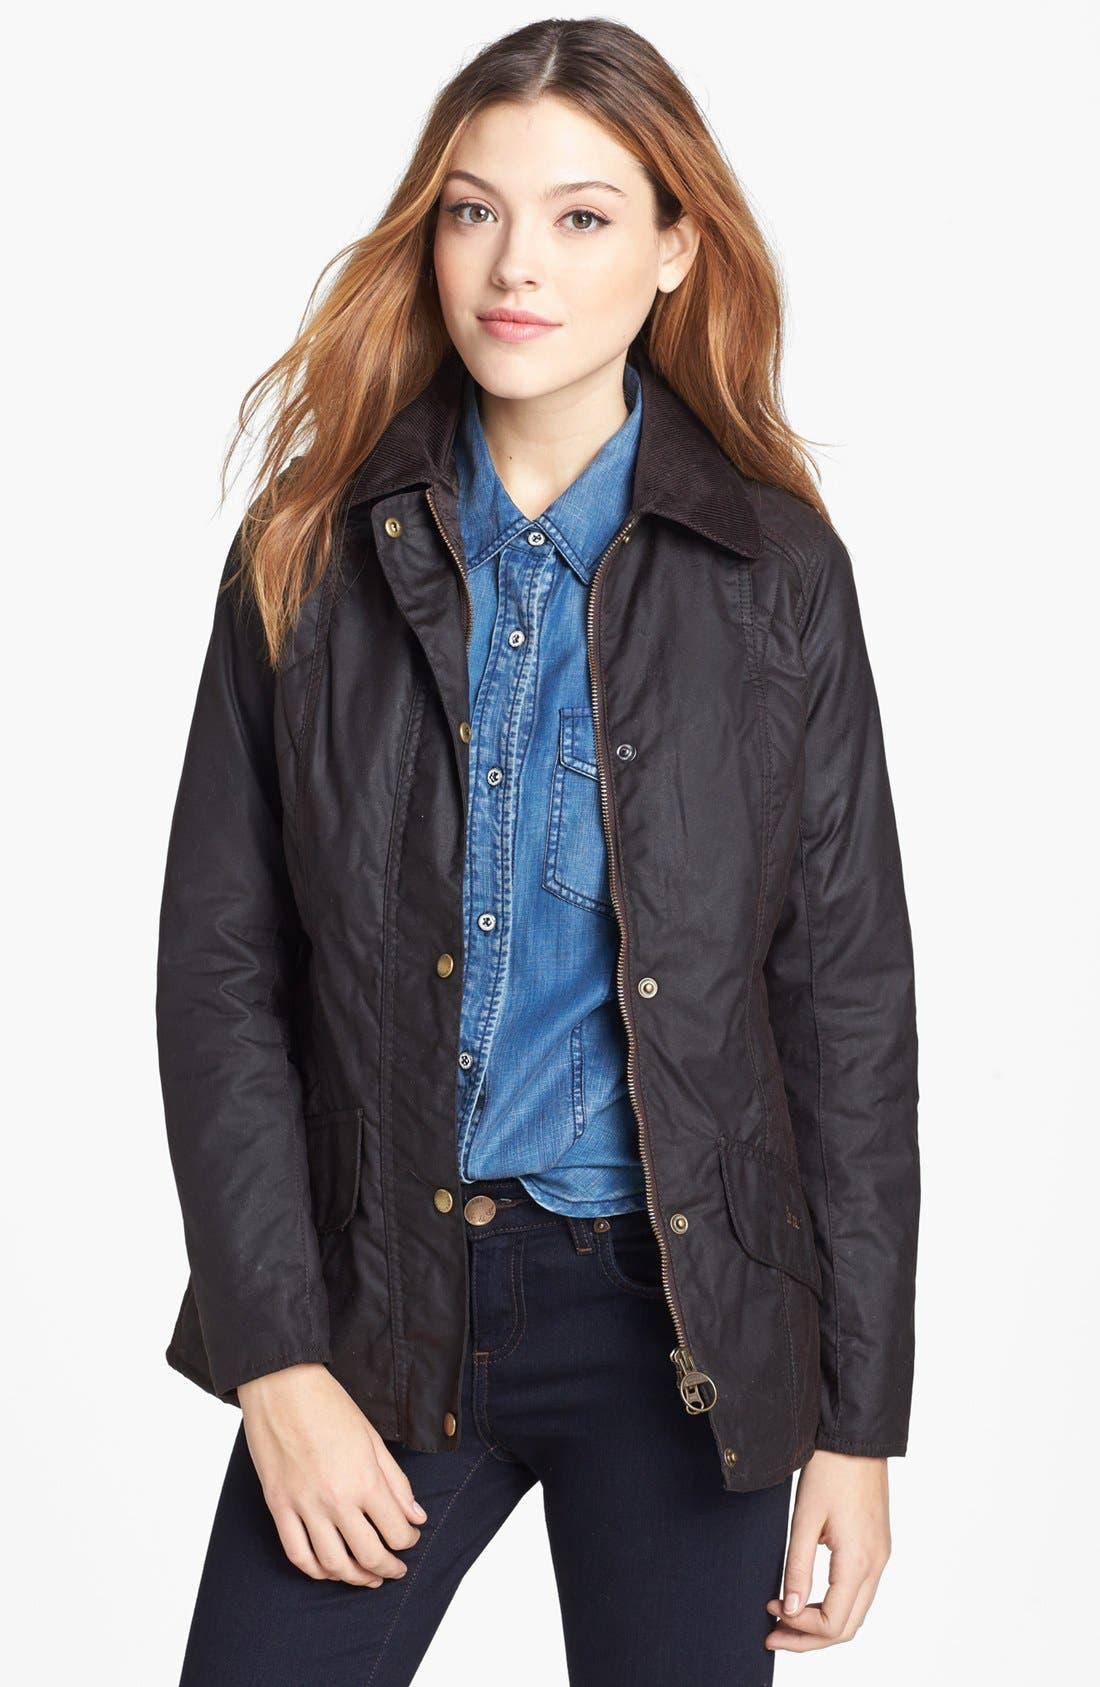 Alternate Image 1 Selected - Barbour 'Sapey' Waxed Cotton Jacket